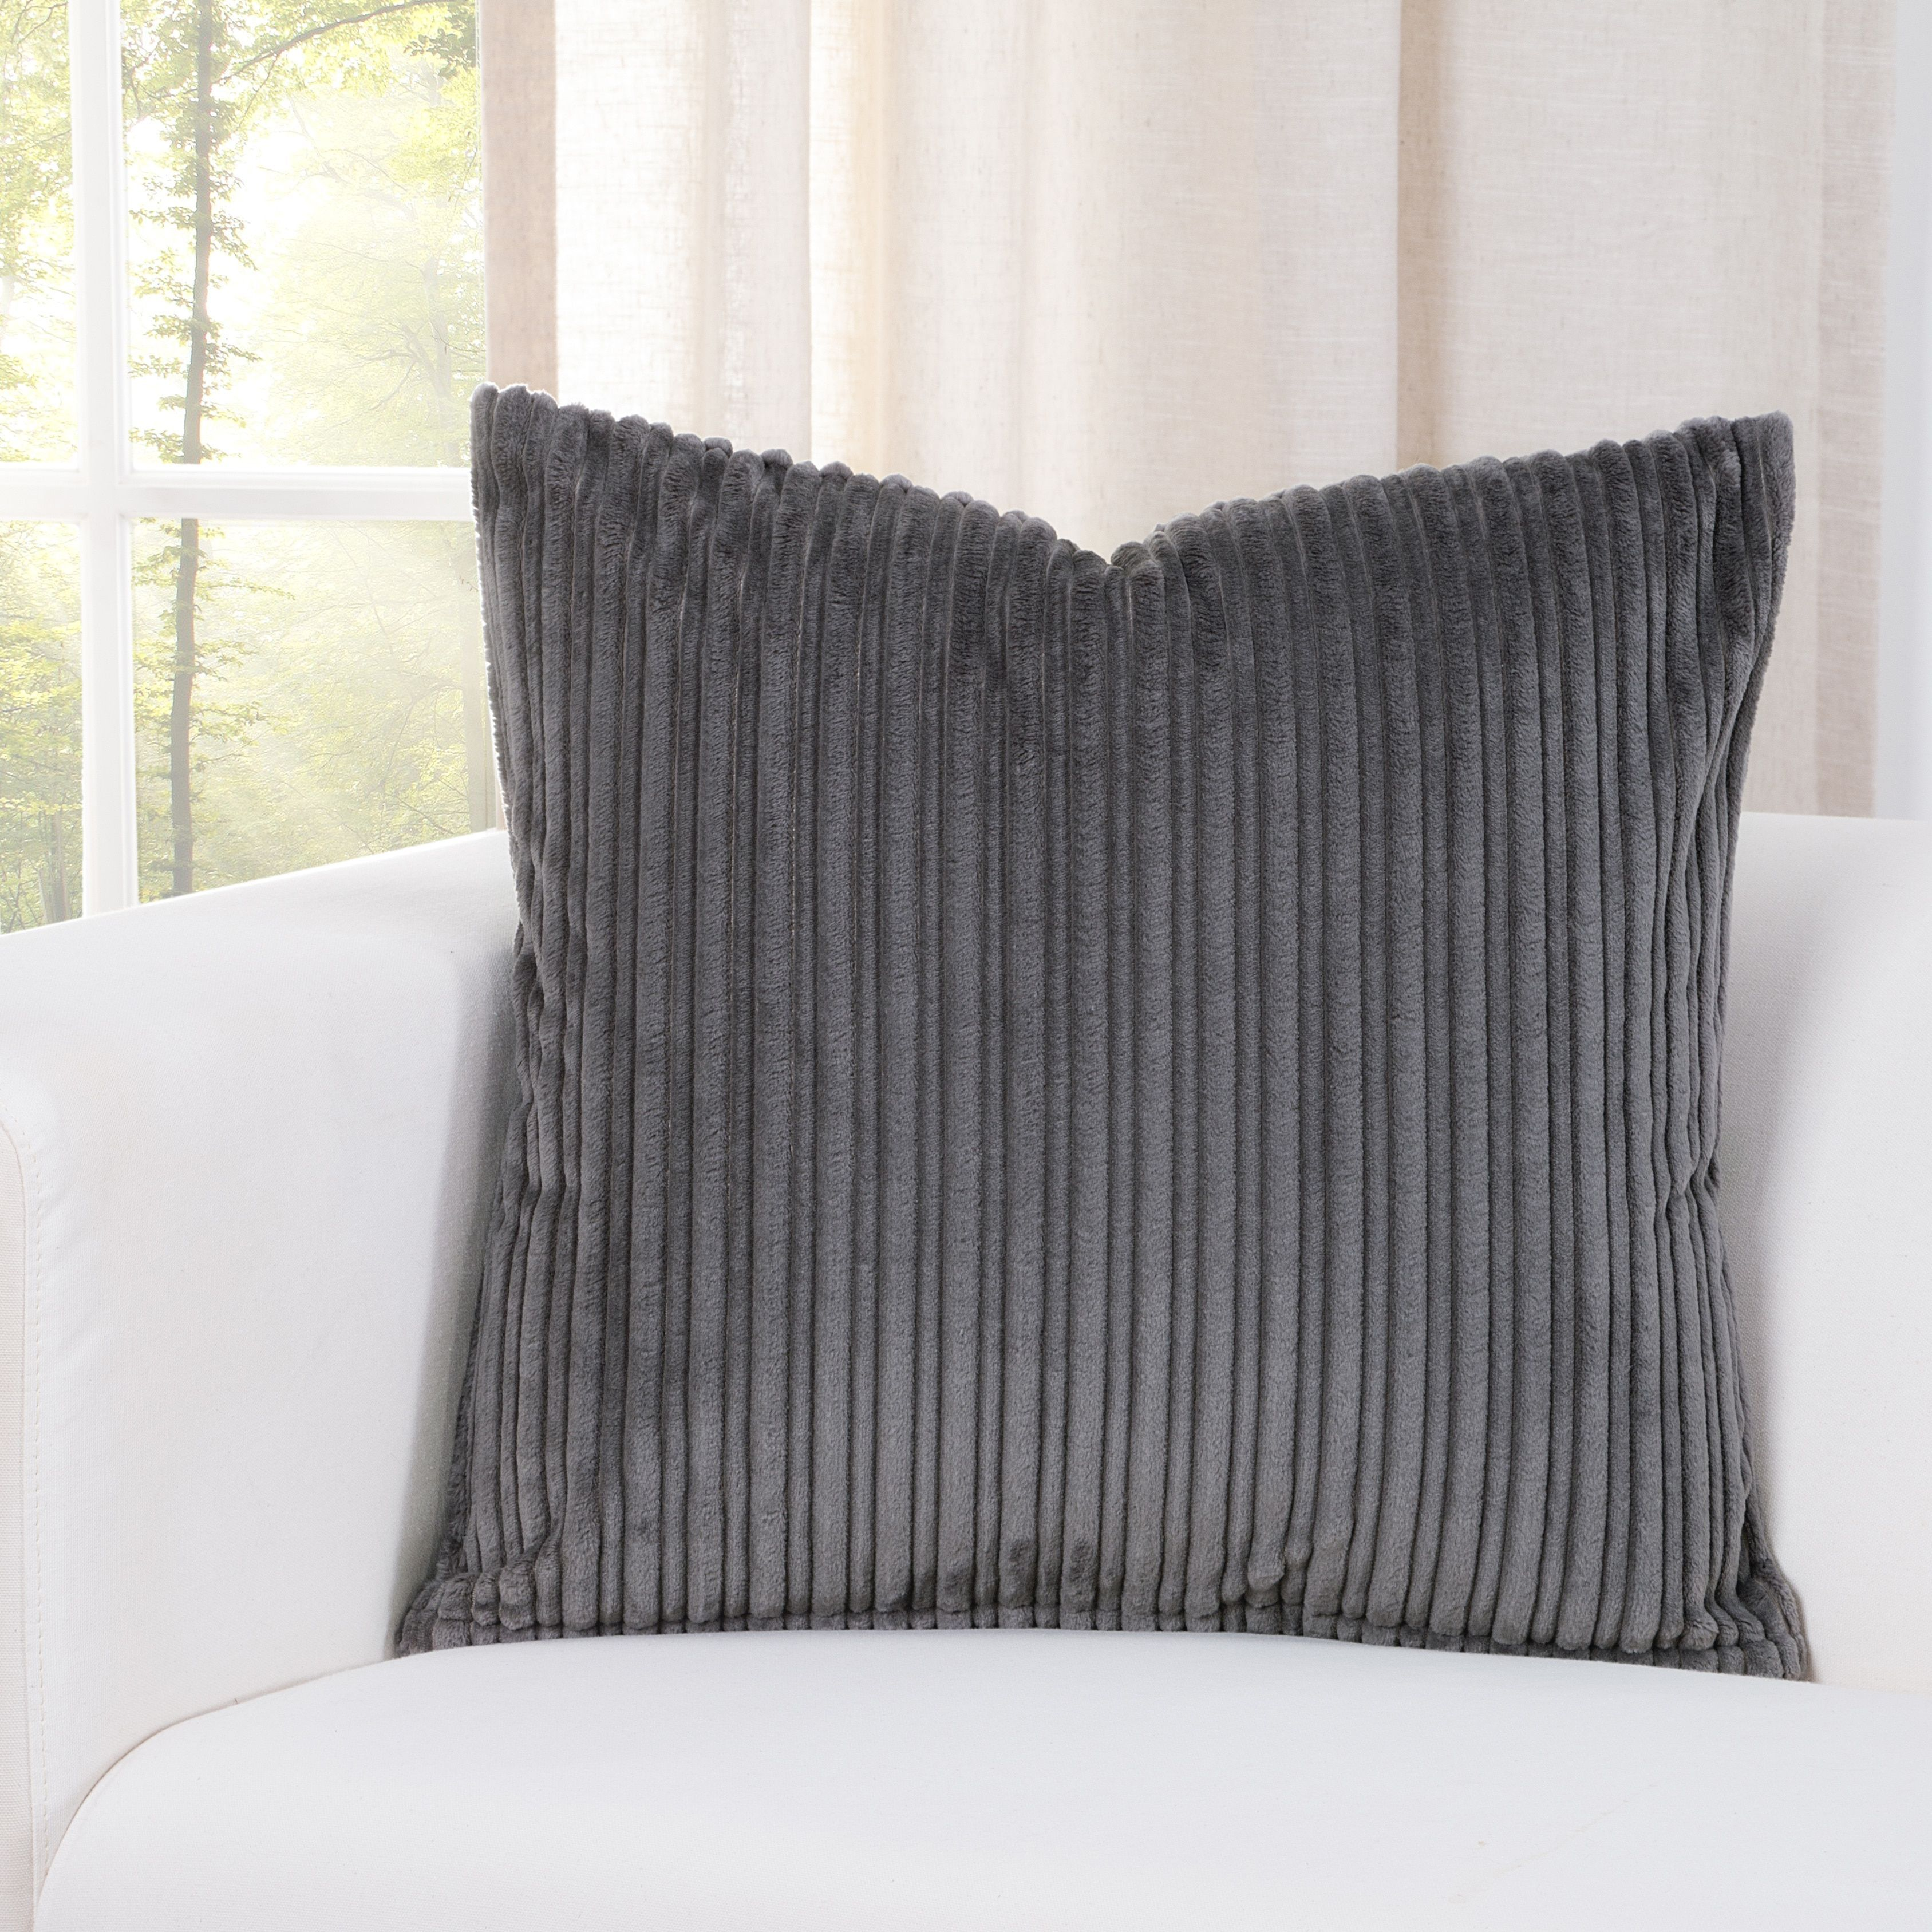 SIScovers Downy Storm Grey Accent Throw Pillows (26 x 26) (Polyester, Solid Color)